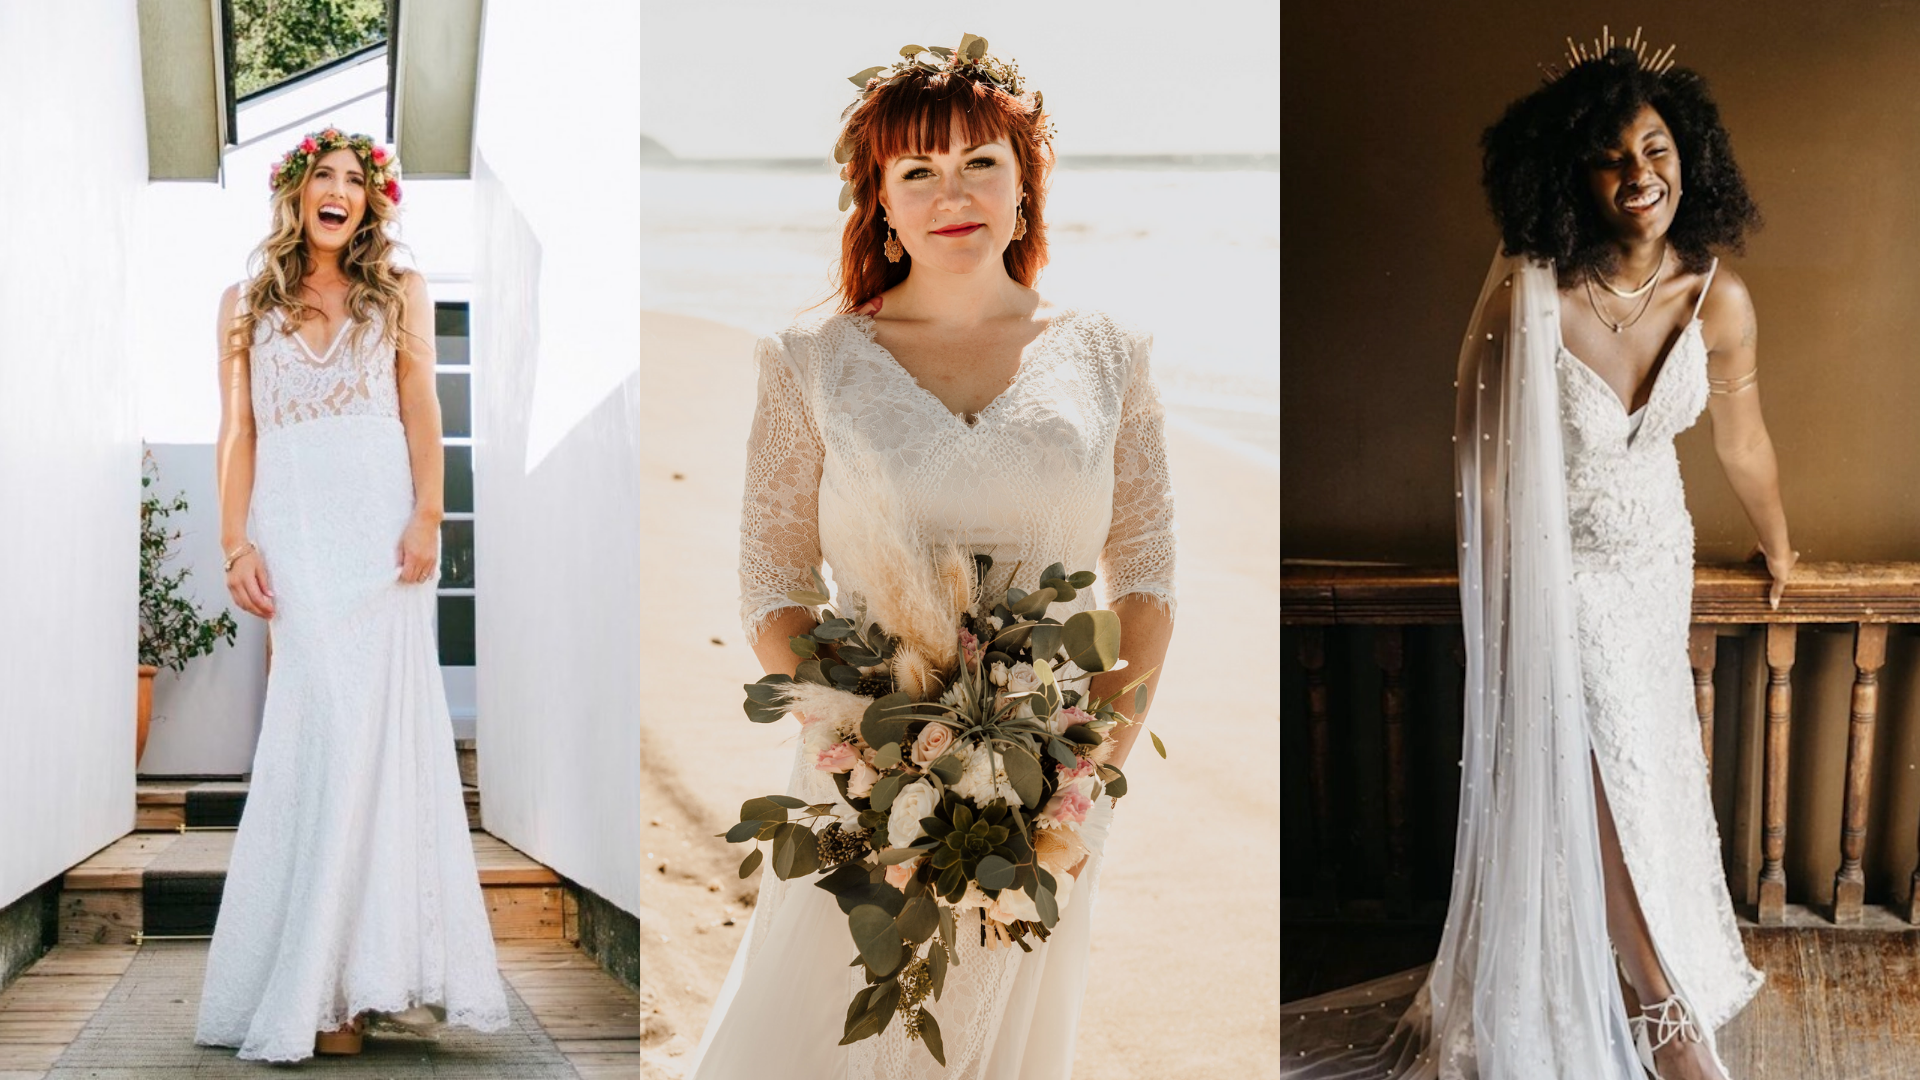 Lindsey is wearing a sleek wedding dress with a sweetheart neckline, Courtney is wearing an etherial bohemian wedding dress with sleeves, Janice is wearing a wedding gown with a slit.